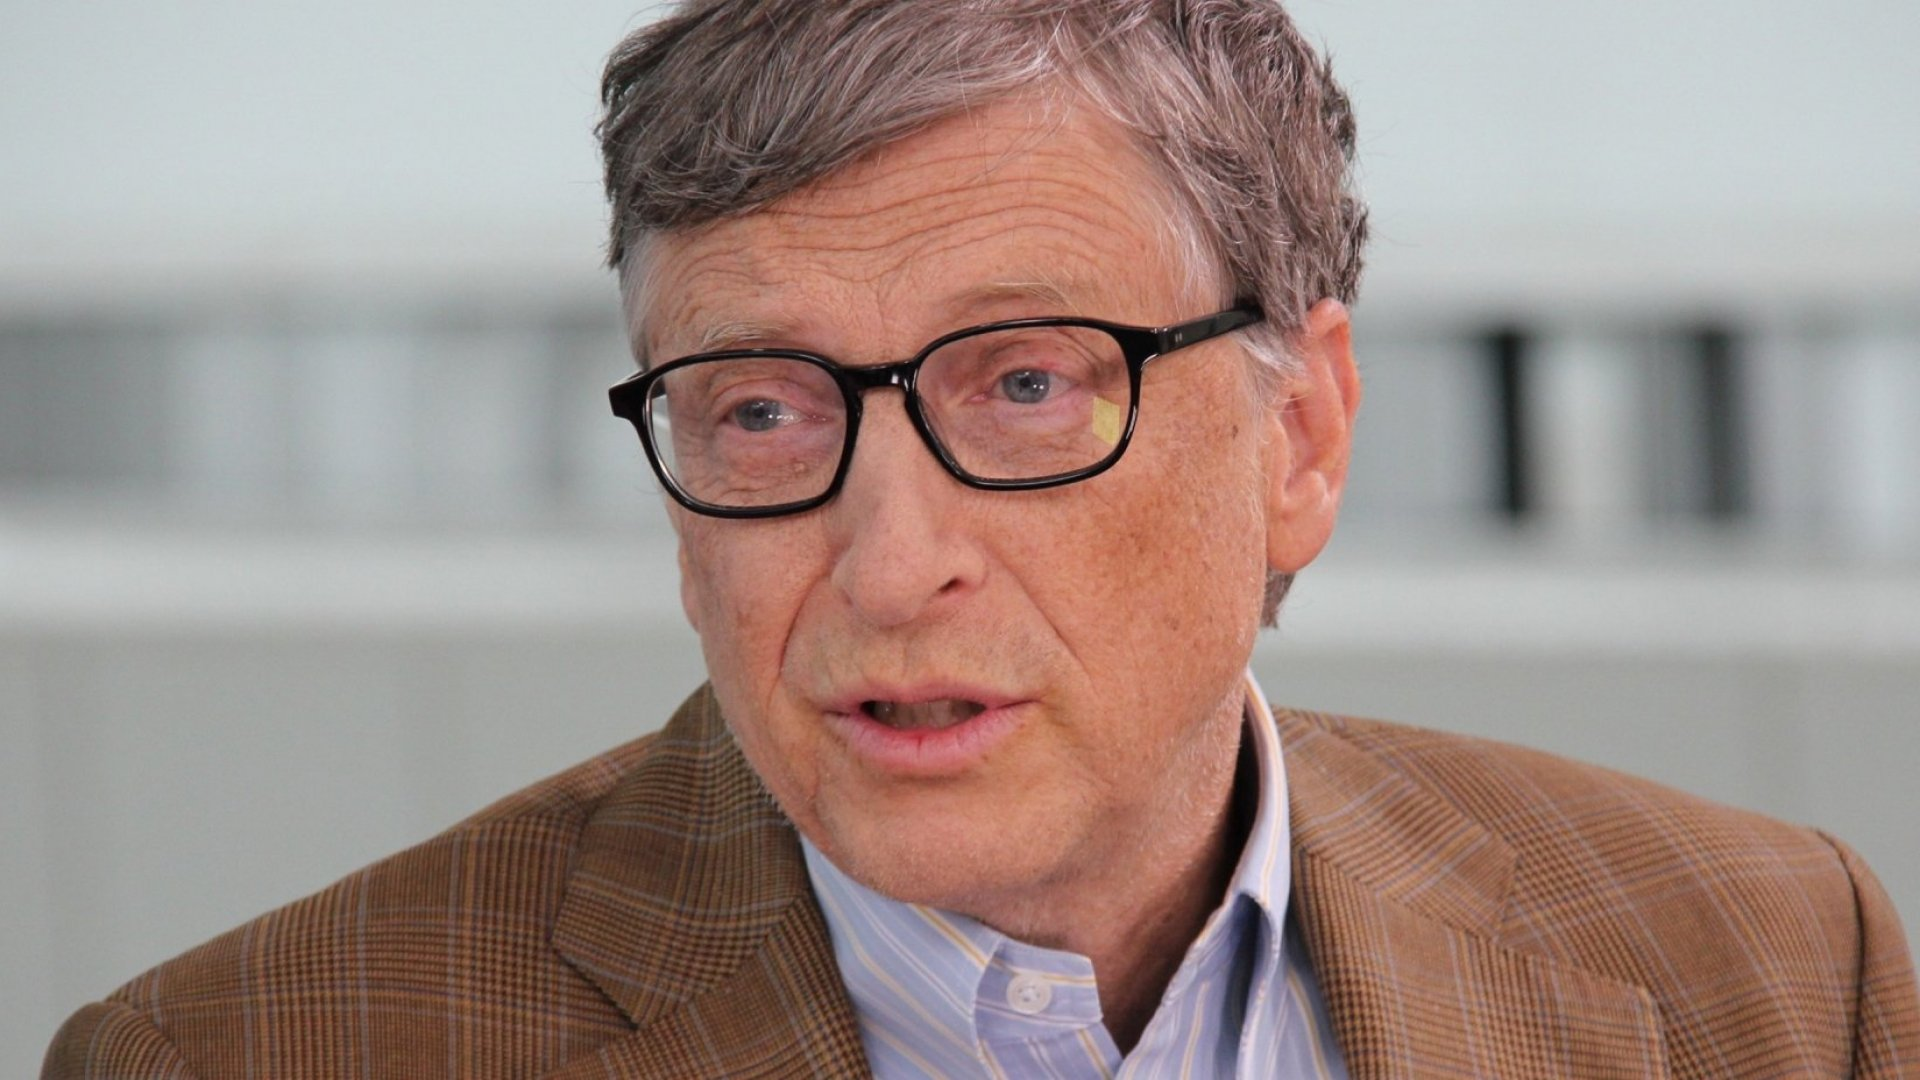 Bill Gates Says America's College Dropout Rate Is Tragic. This Startup Aims to Fix It